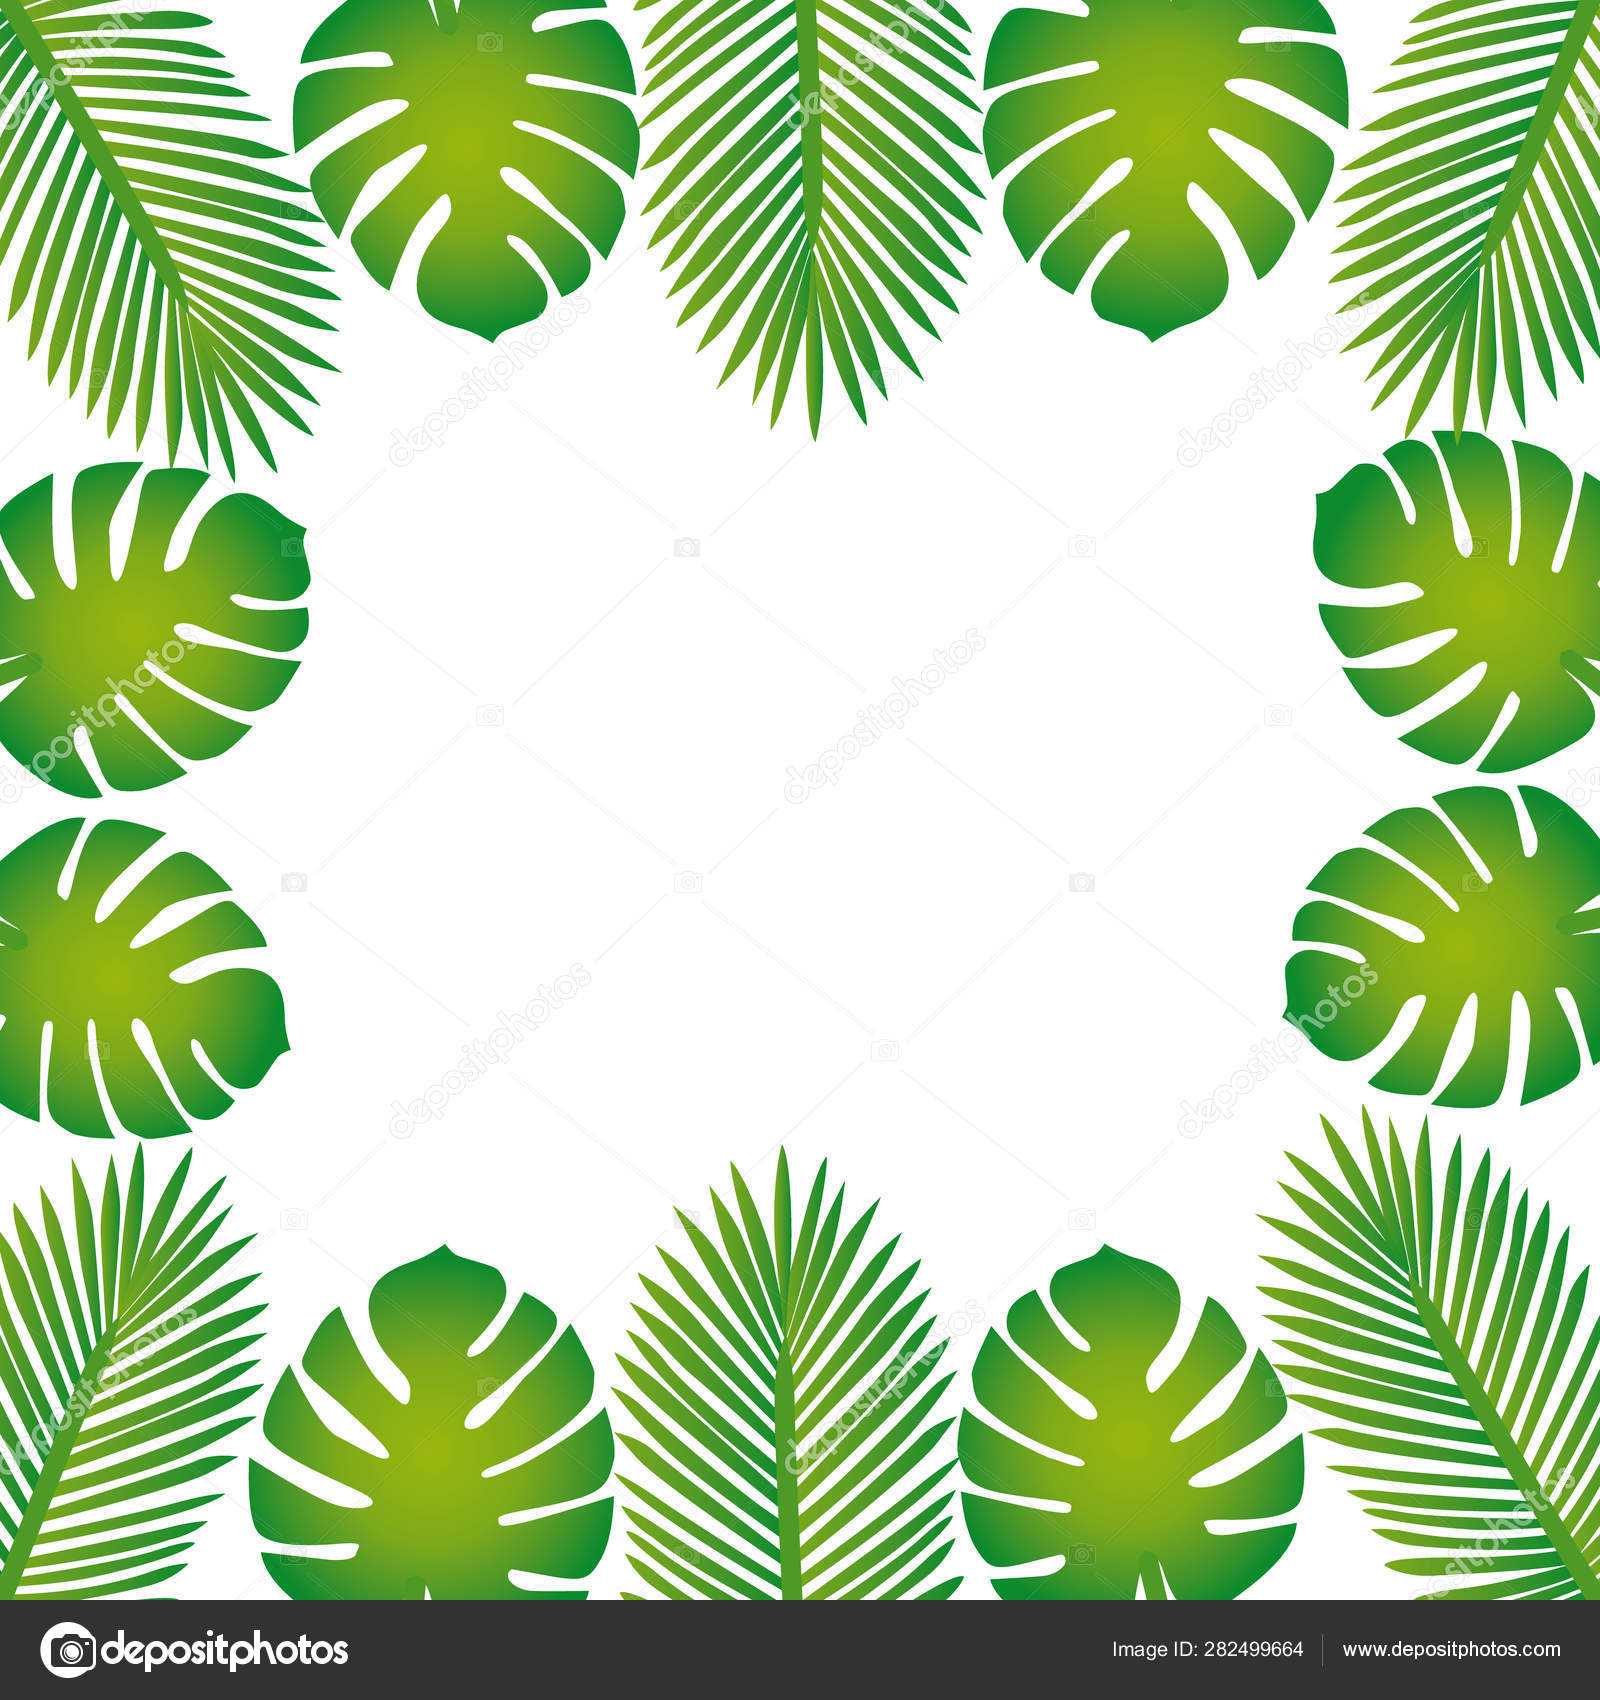 Trendy Summer Tropical Leaves Border Vector Design Stock Vector C Albachiaraa 282499664 Tropical leaf palm print, showing various tropical plants together in one poster. trendy summer tropical leaves border vector design stock vector c albachiaraa 282499664